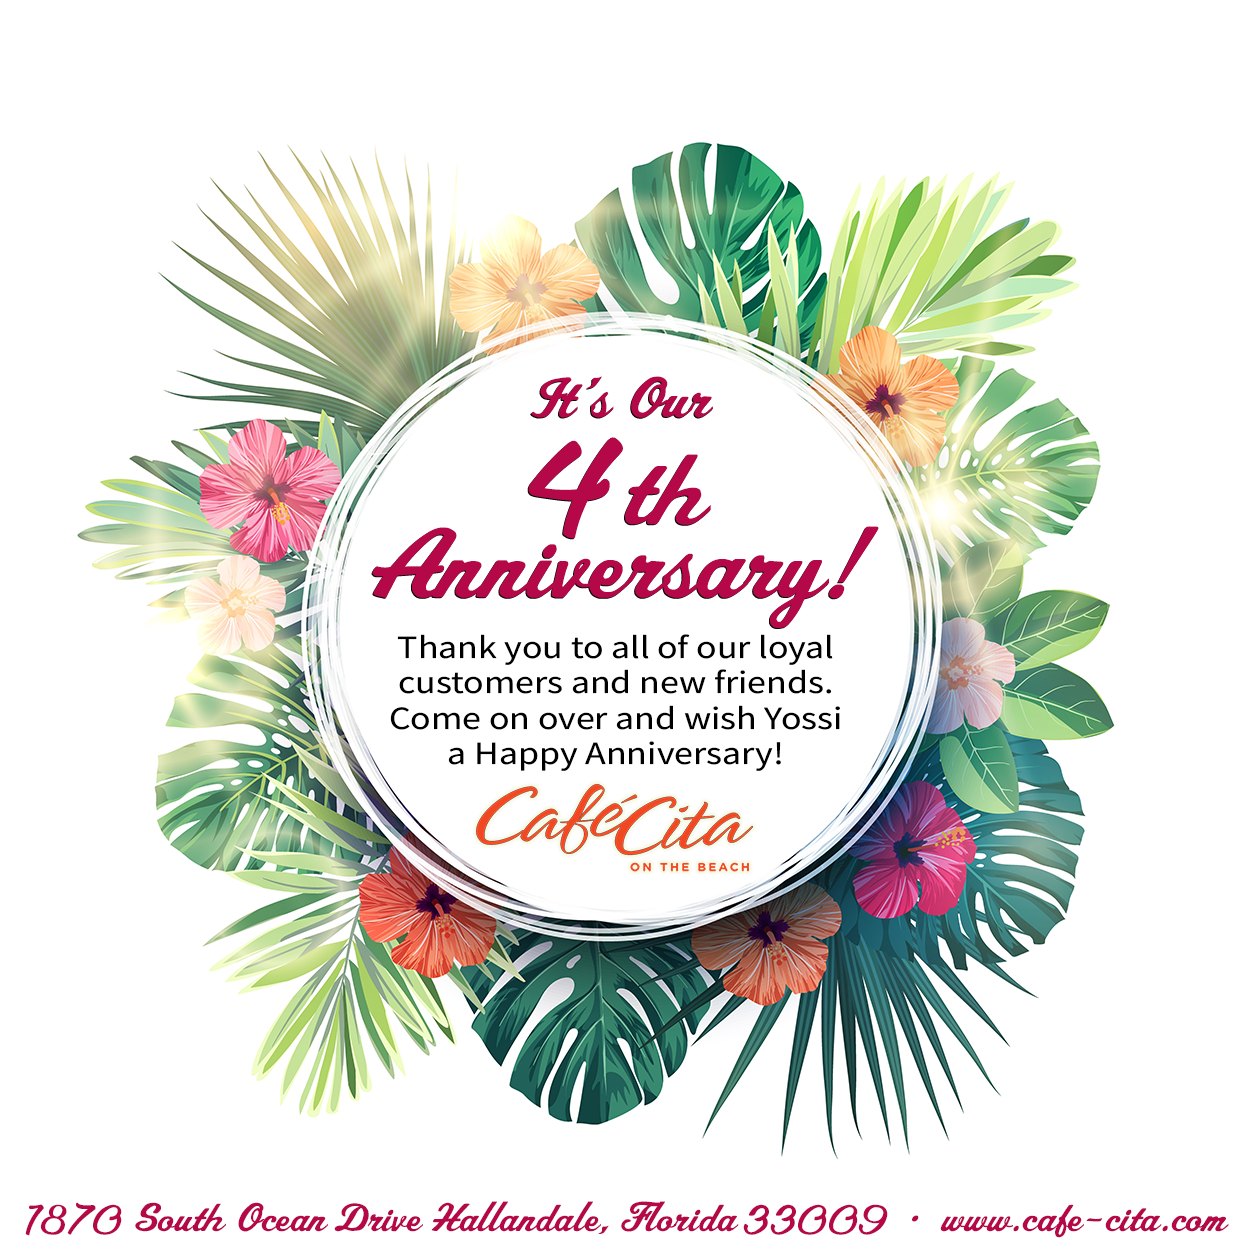 It's Our 4th Anniversary! Thank you to all of our loyal customers and new friends. Come on over and wish Yossi a Happy Anniversary! Café Cita on the Beach. 1870 South Ocean Drive Hallandale, Florida 33009 • www.cafe-cita.com